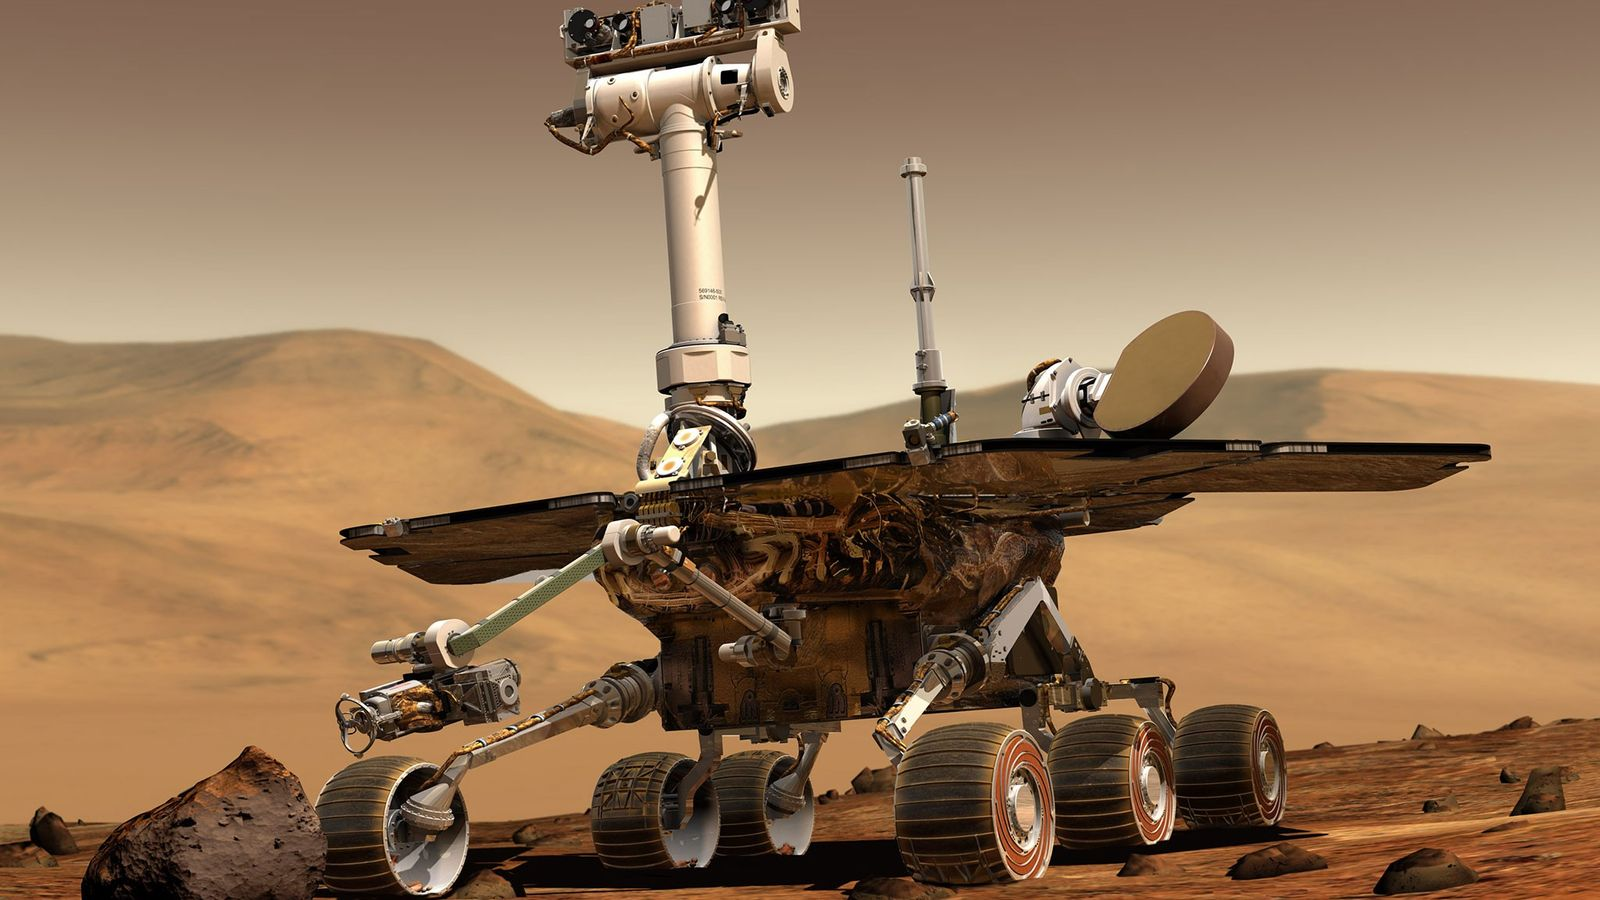 A NASA Mars Exploration Rover sits on the surface of Mars in an illustration. Twin versions ...